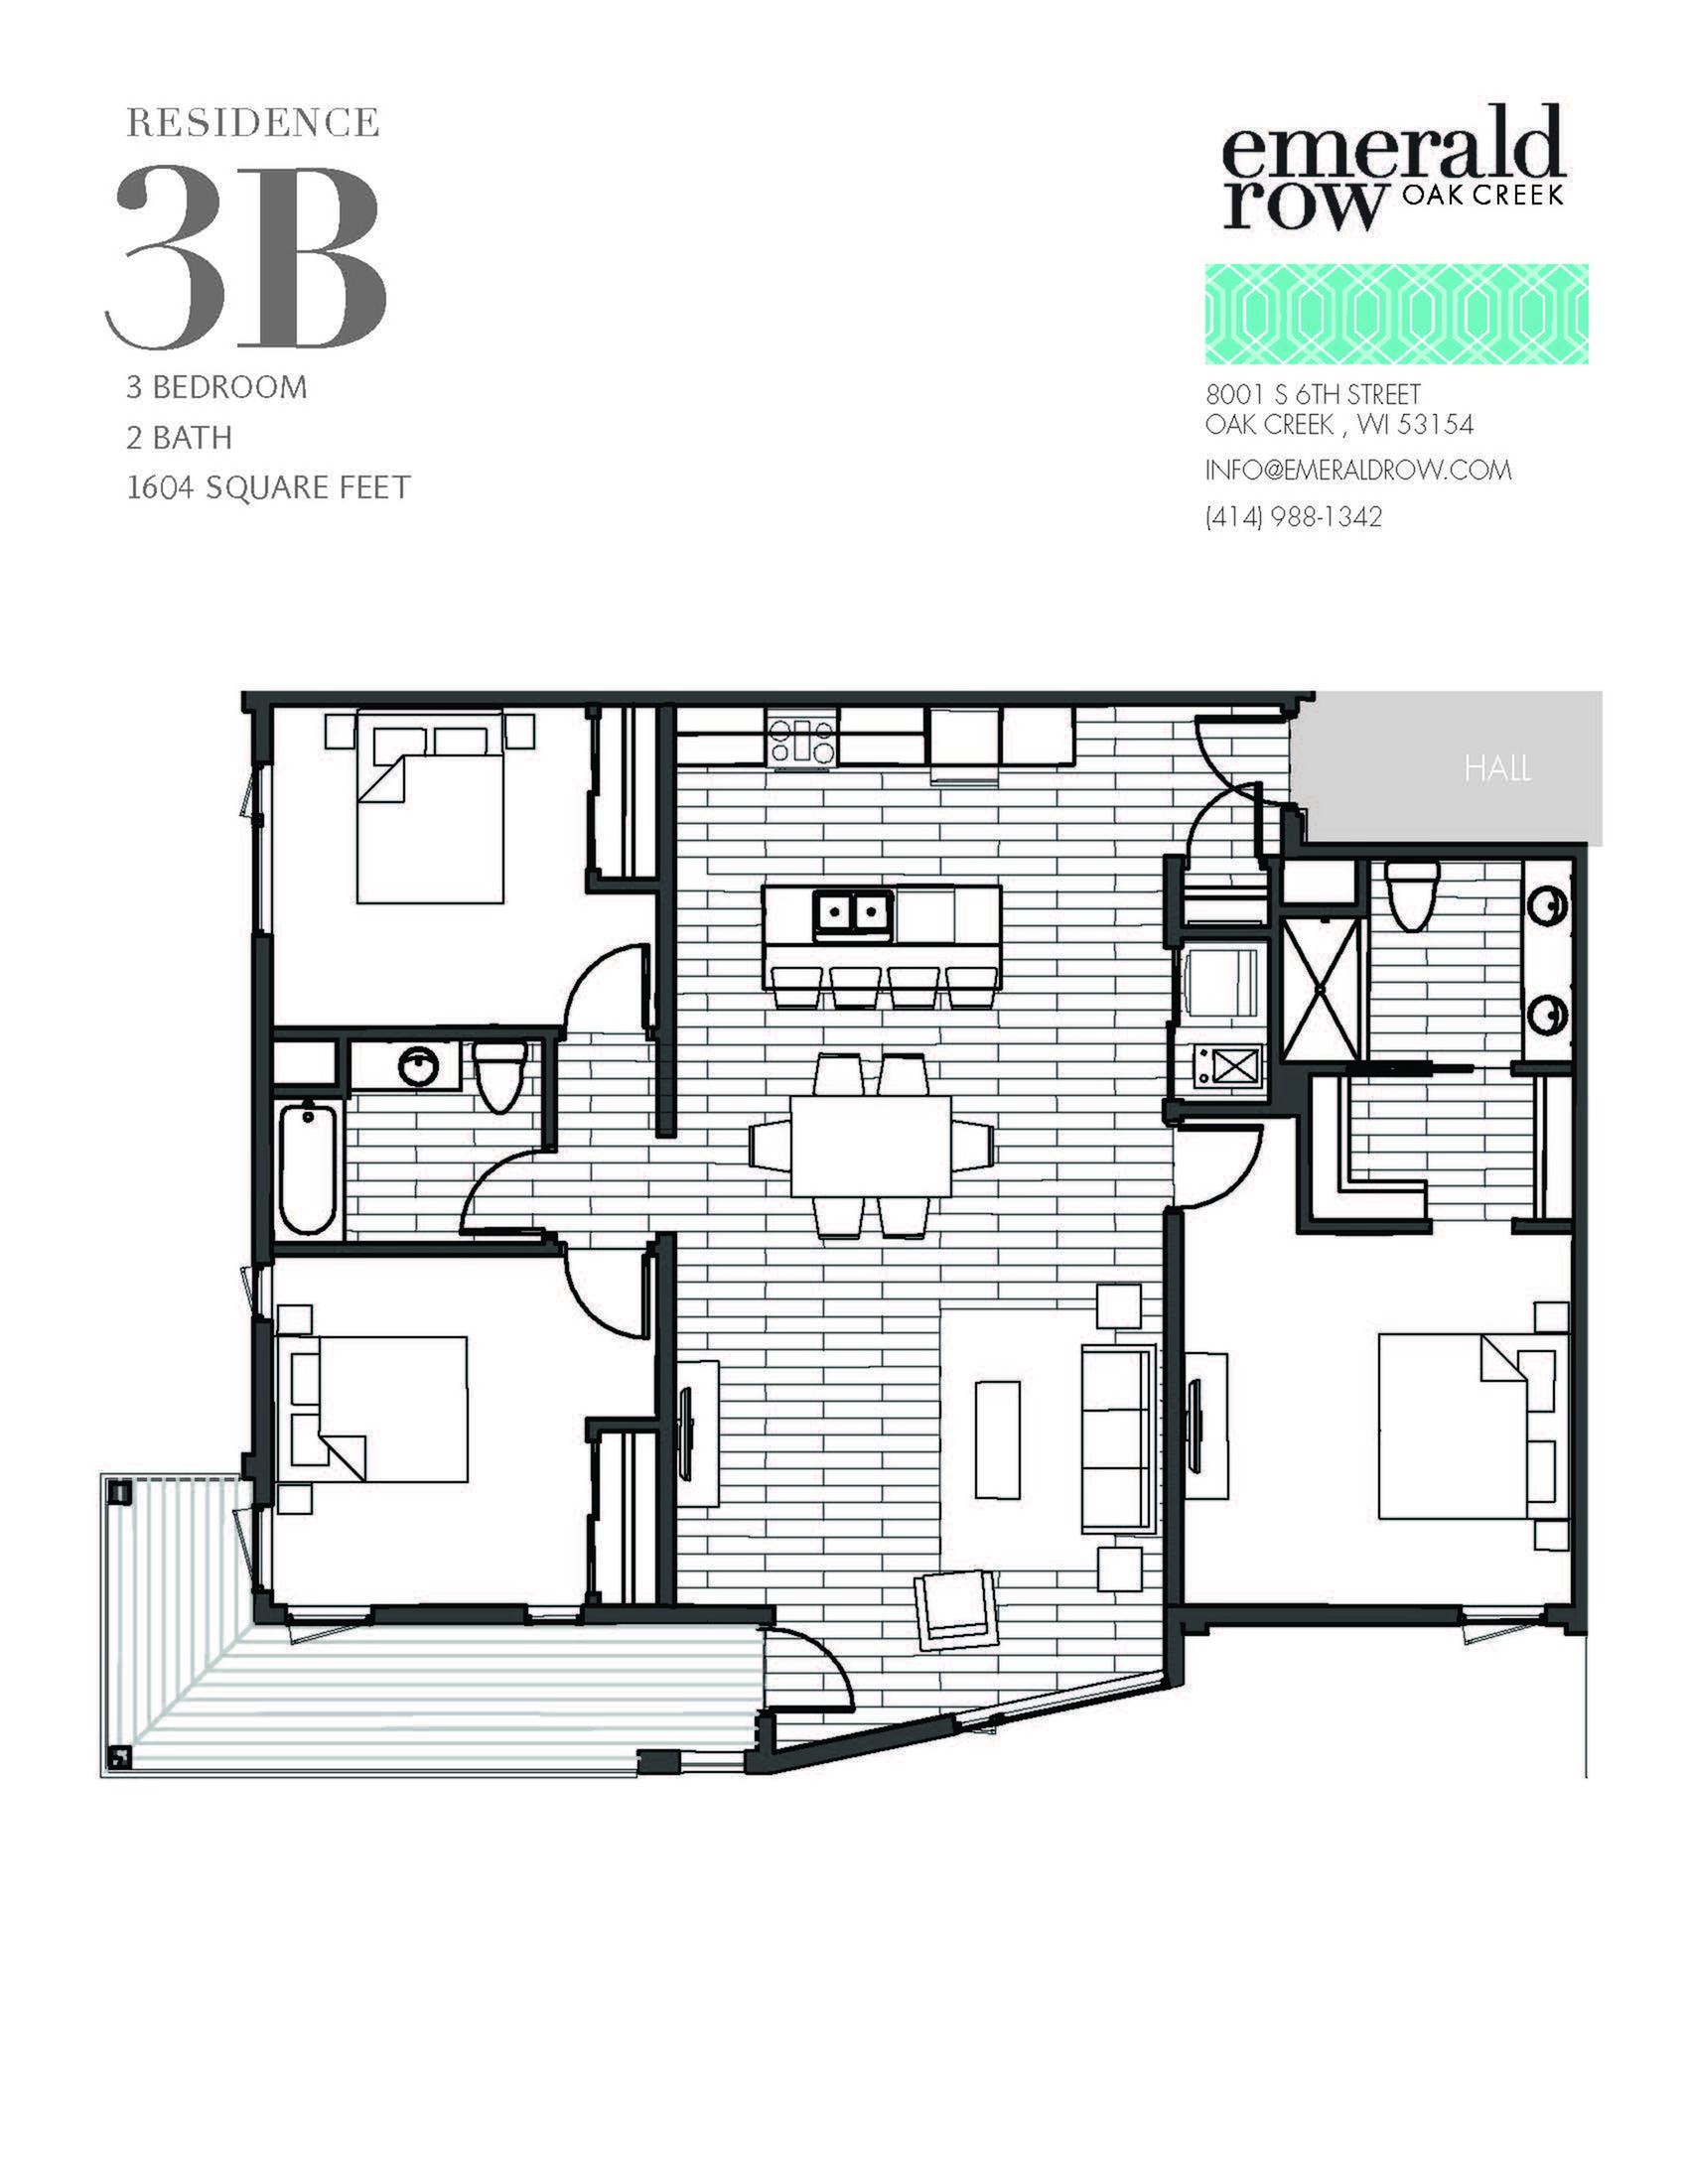 3 Bed 2 Bath Floor Plan 3B